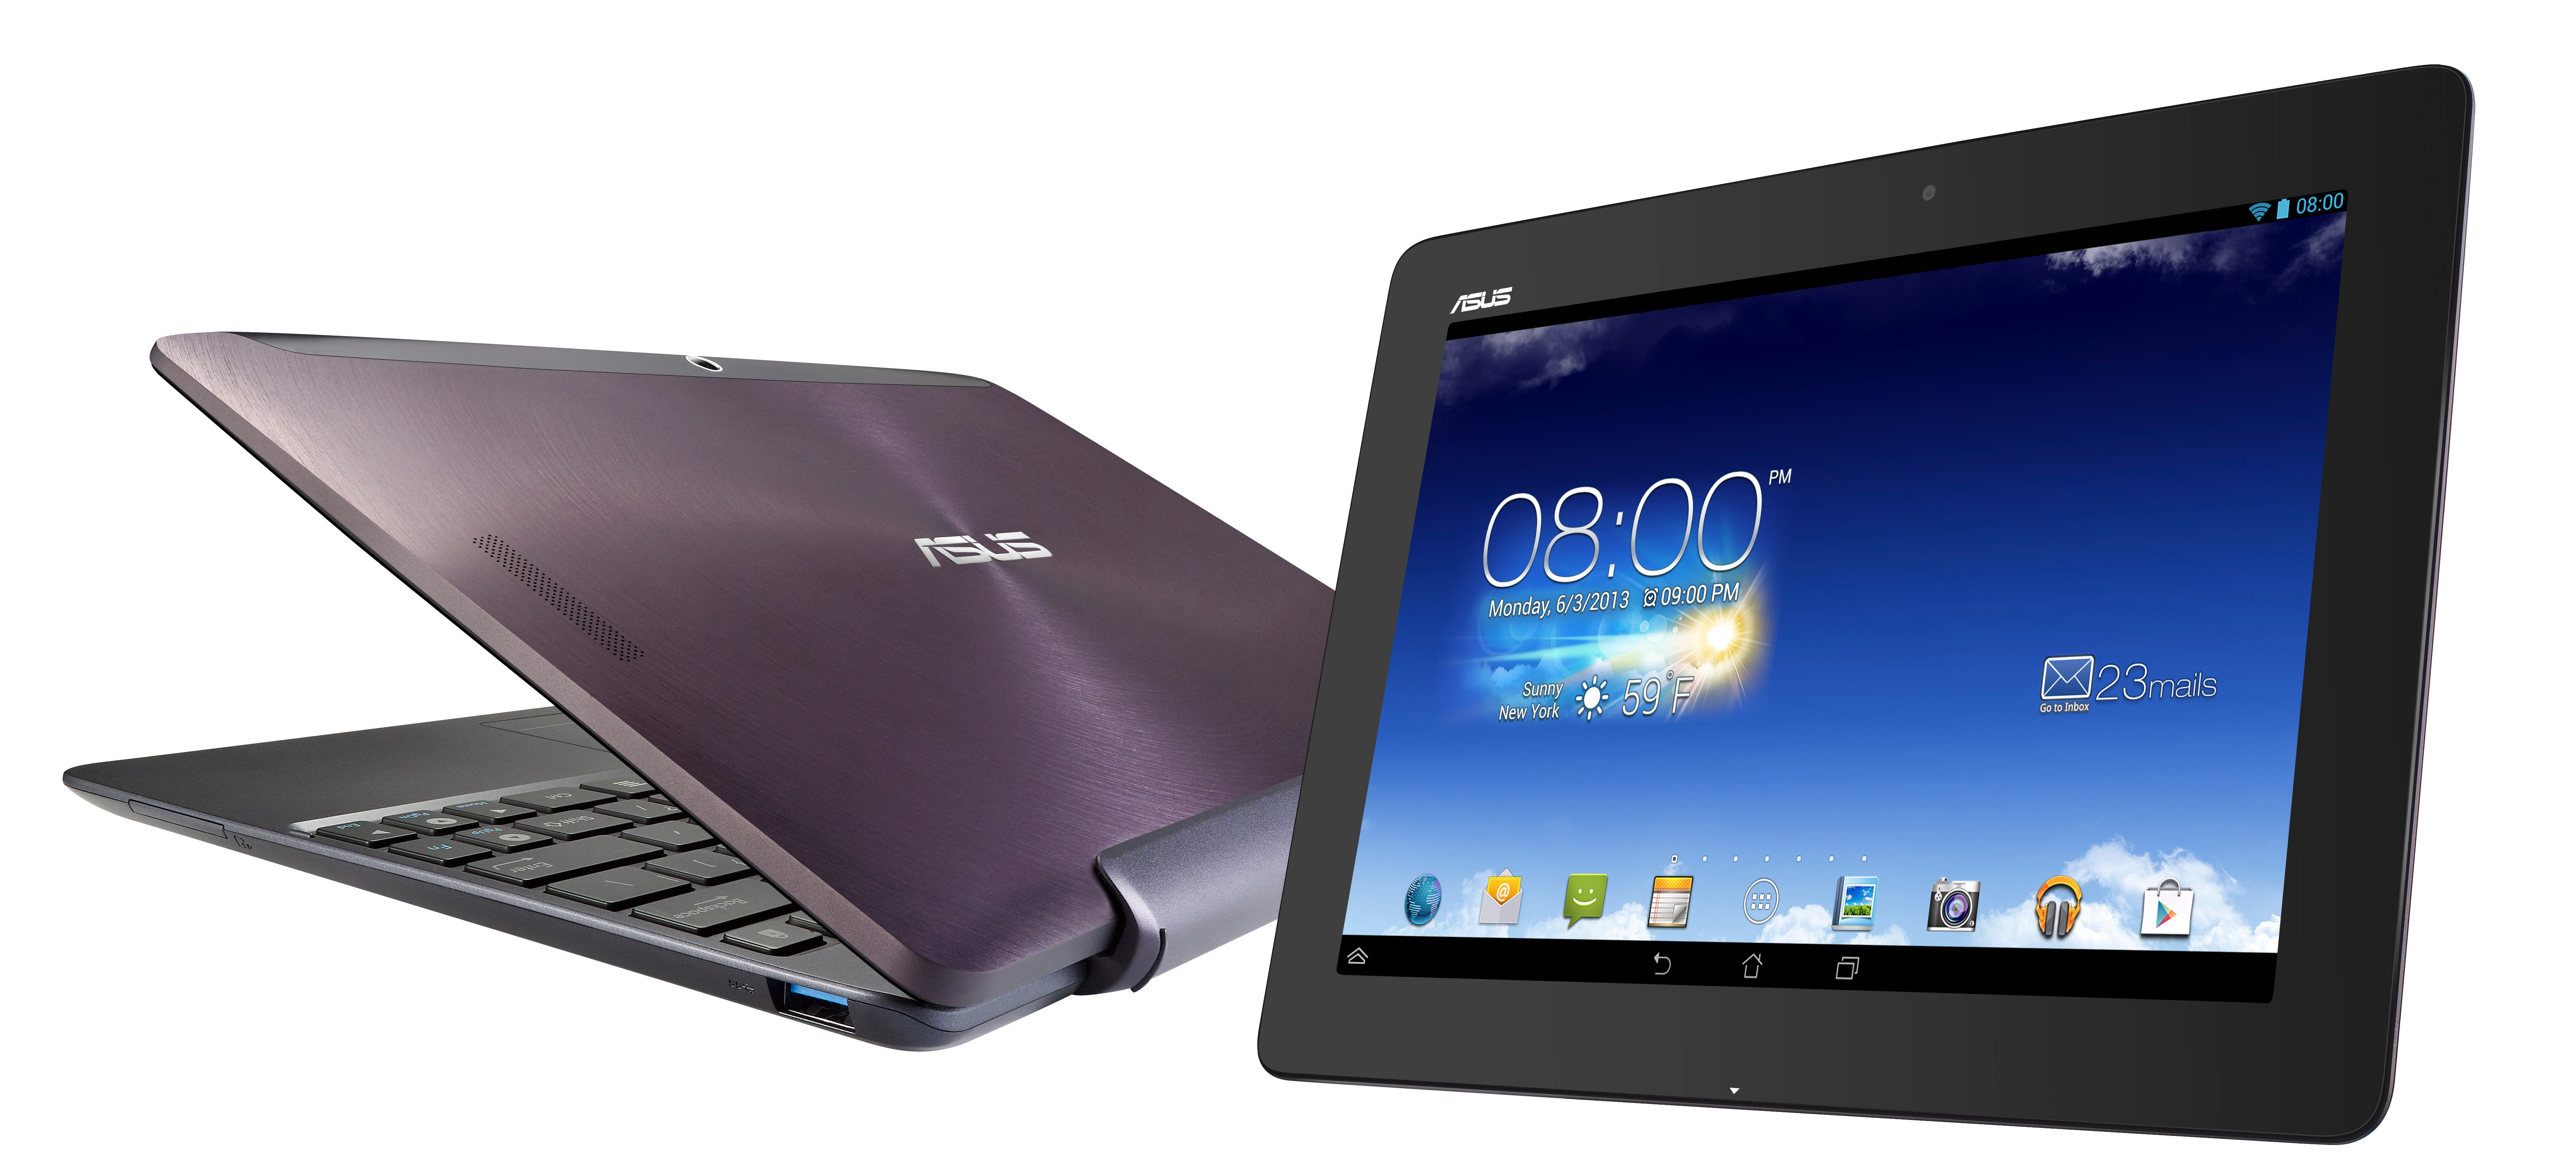 Computex: New ASUS Transformer Pad Infinity mit WQXGA-Display & Tegra 4 – Specs & Hands-on-Video